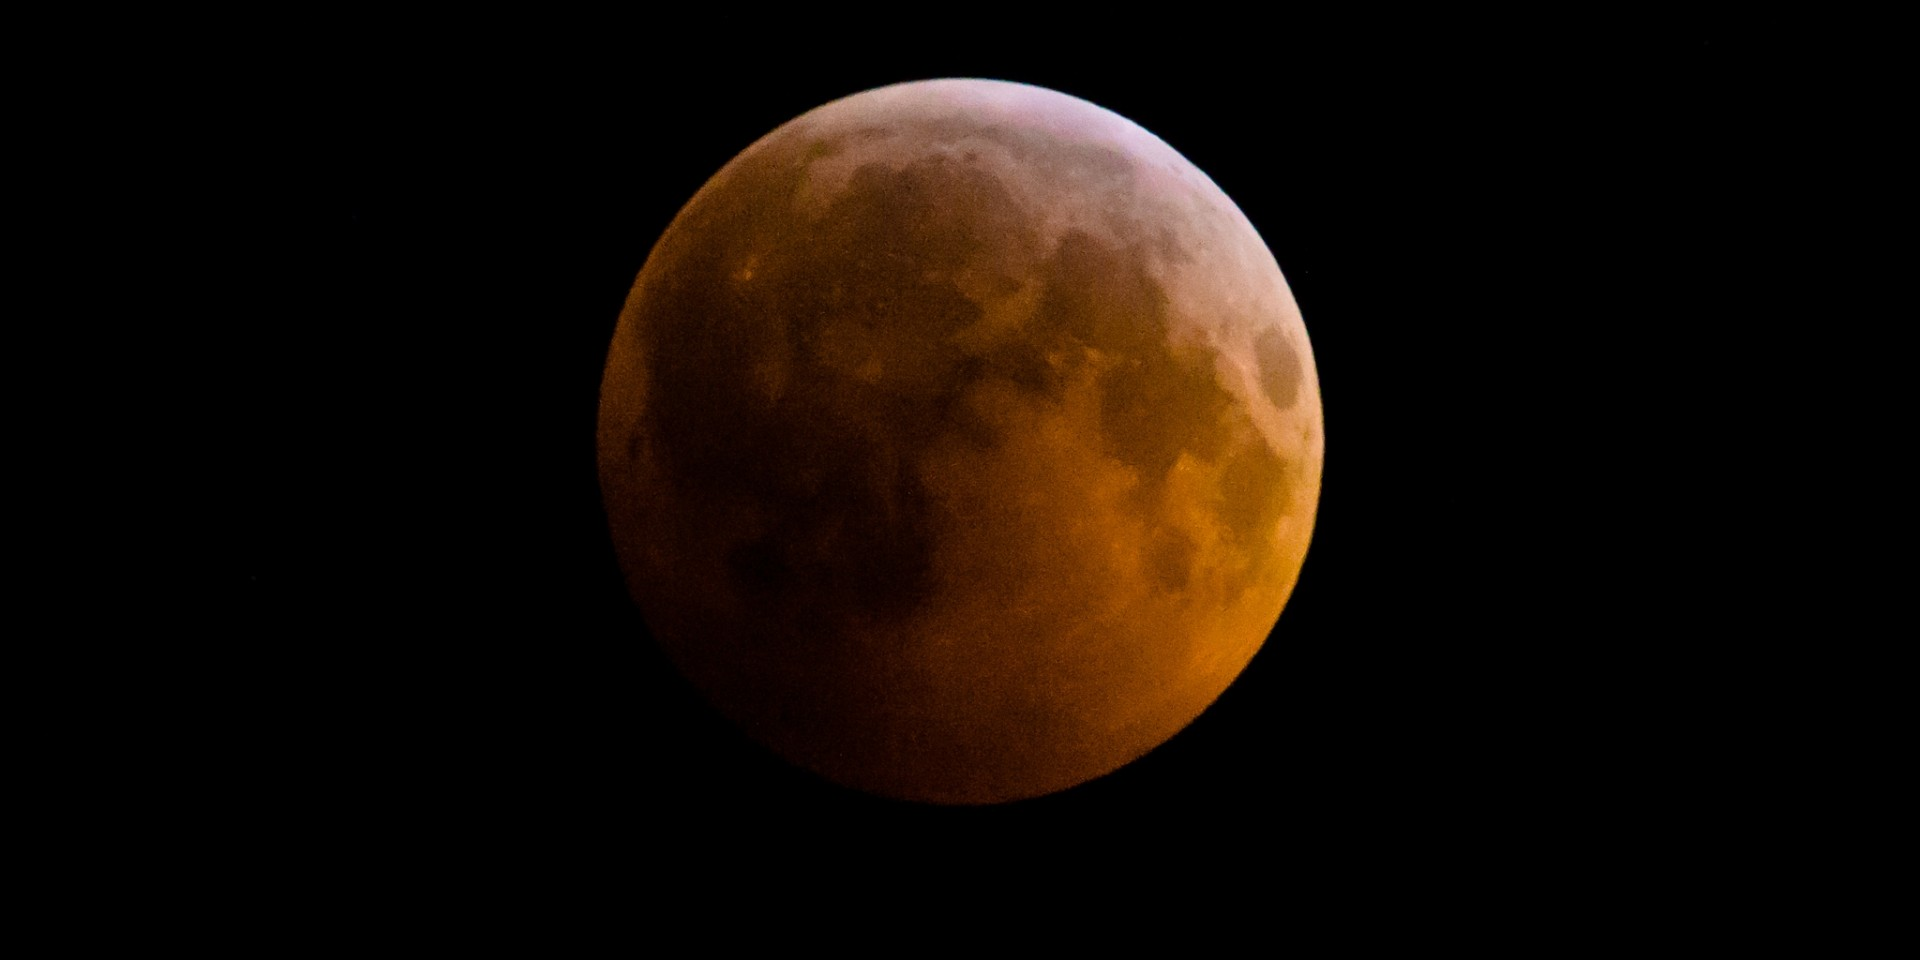 A total lunar eclipse will turn the moon a coppery orange this Sunday night, kicking off a year of celestial highlights worth seeing, says a U of A astrophysicist. (Photo: Kurt Bauschardt via Flickr, CC BY-SA 2.0)